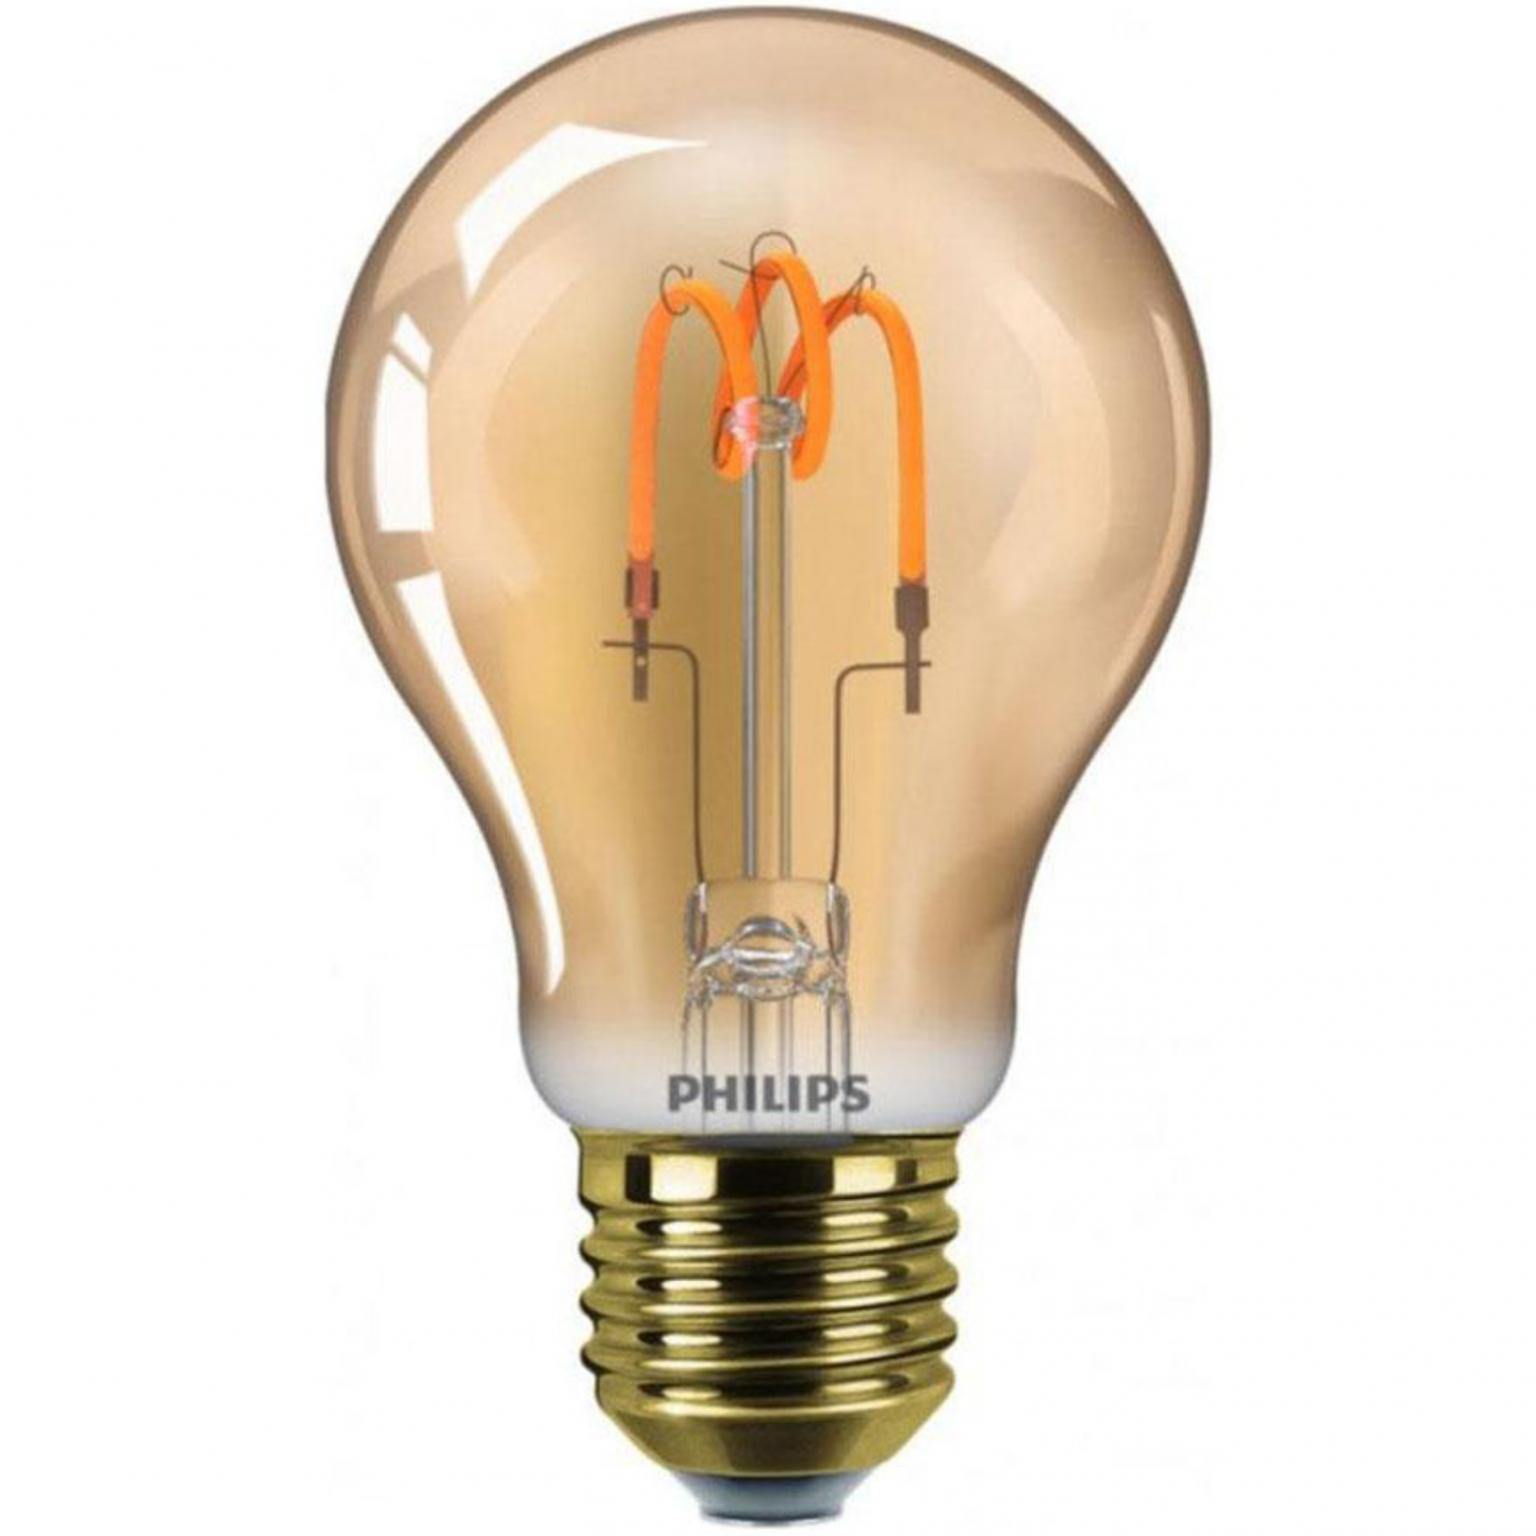 Filament Lamp - 125 Lumen - Philips